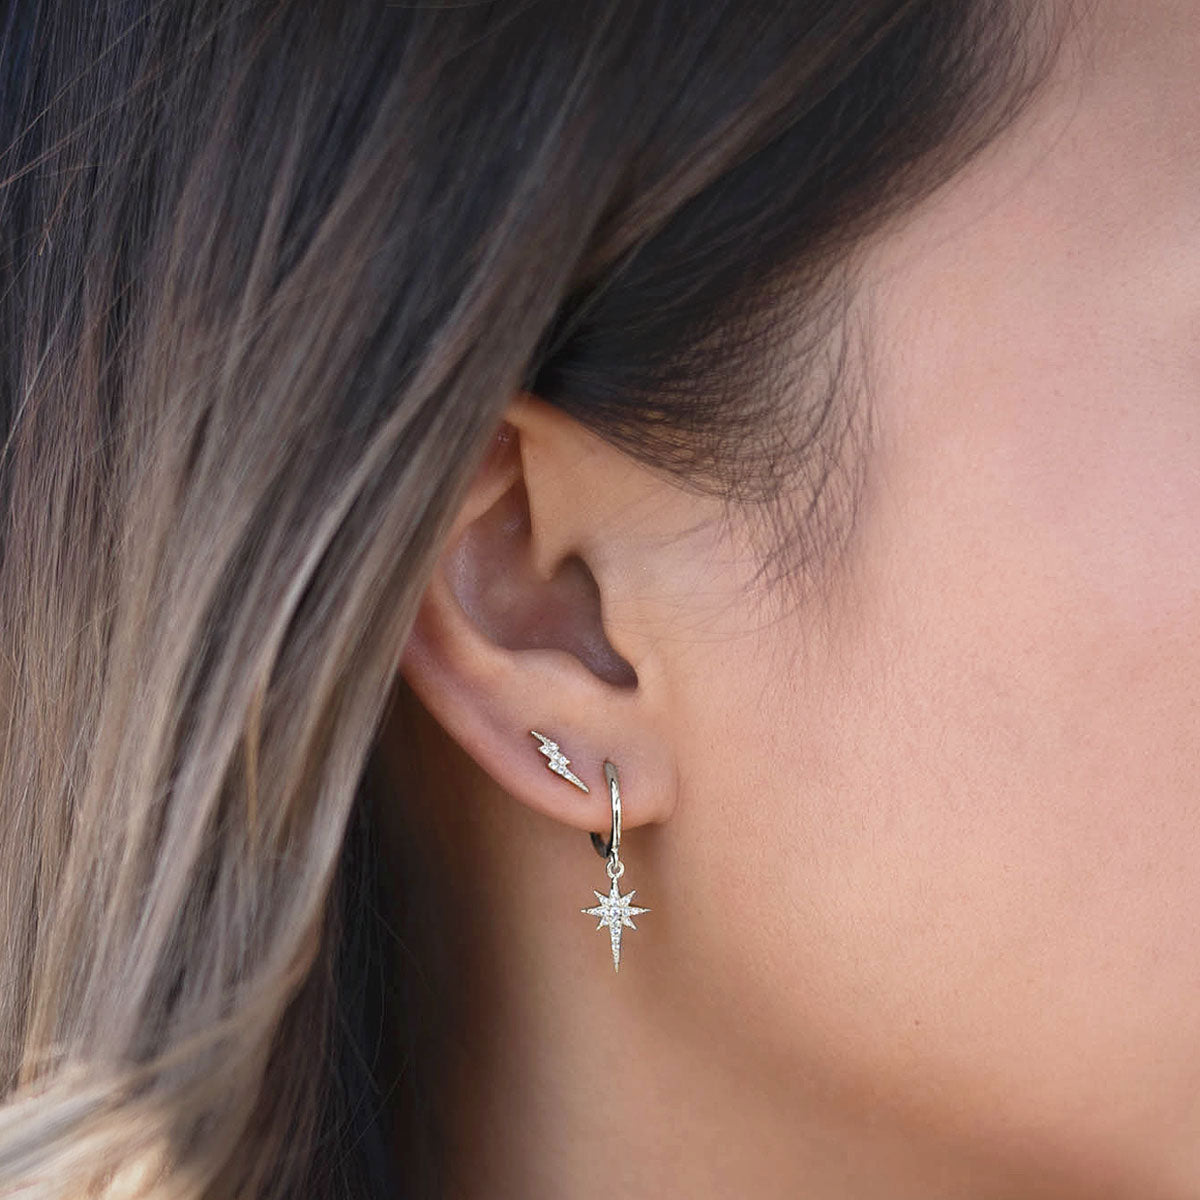 Sterling Silver Starburst Huggie Earrings paired with tiny Lightning Bolt Studs